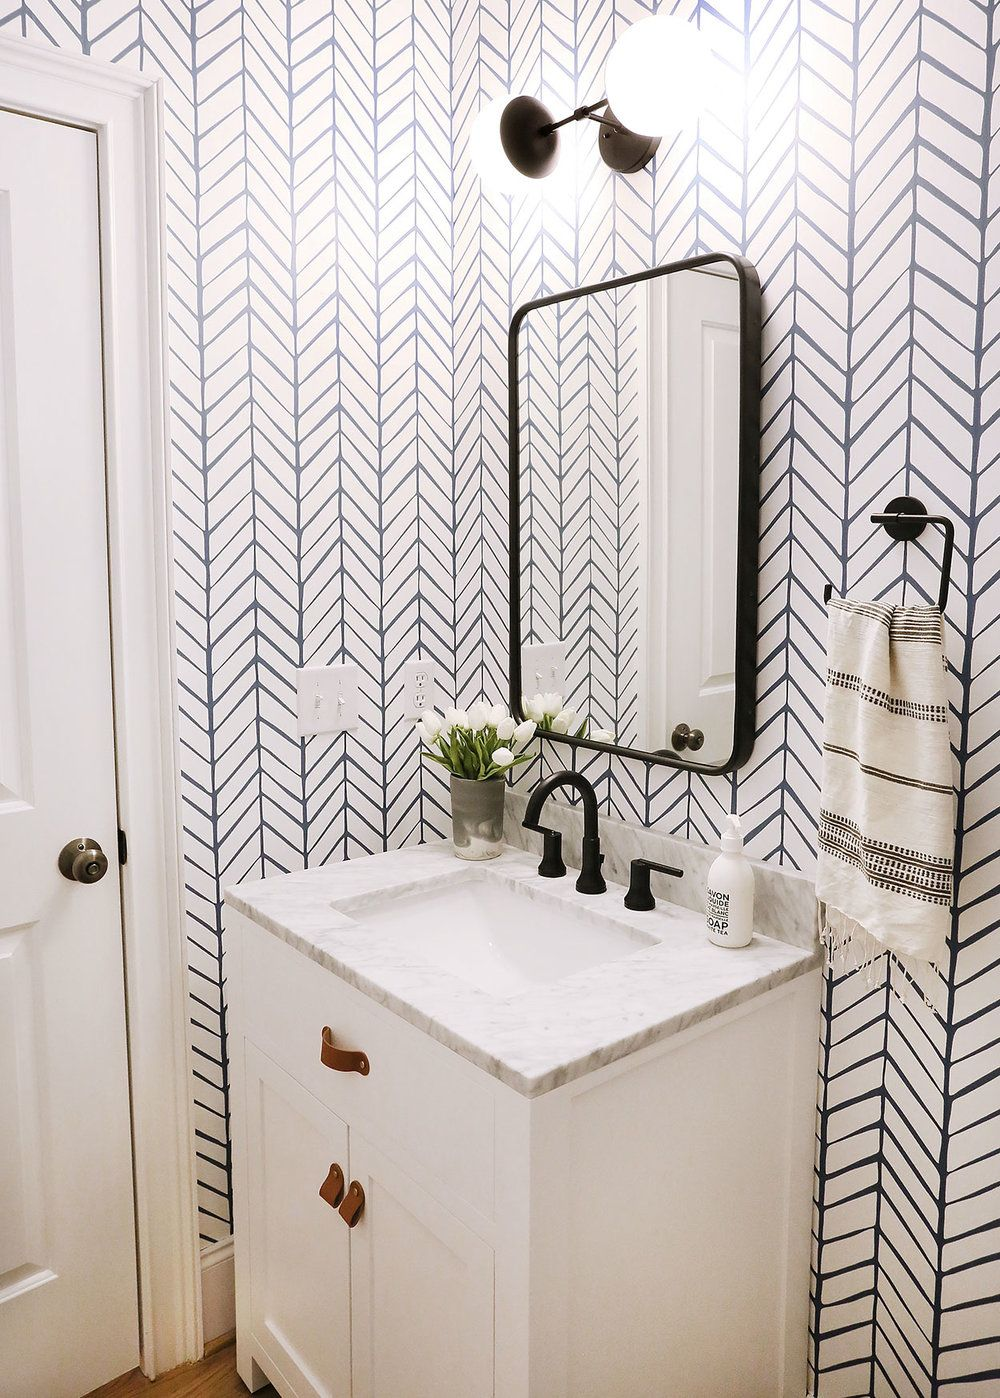 A Fun & Graphic Powder Room Reveal in 2020 Wallpaper